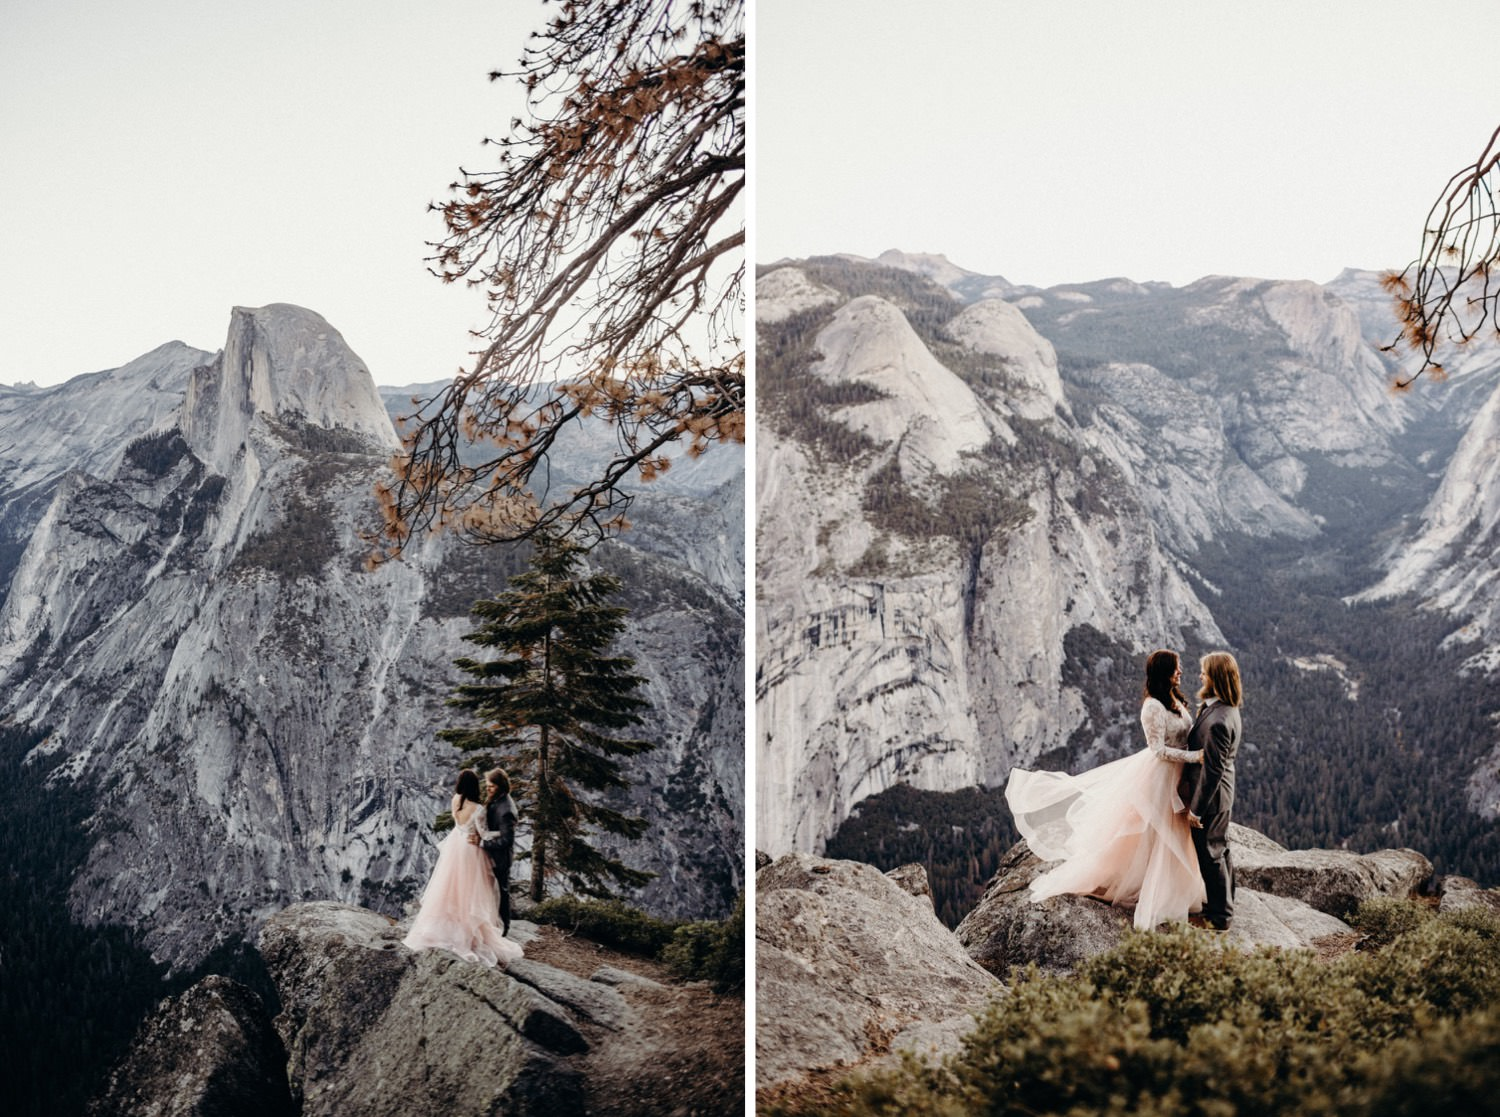 04_alex+matt-wedding-8_alex+matt-wedding-17_park_national_elopement_wedding_yosemite_intimate.jpg